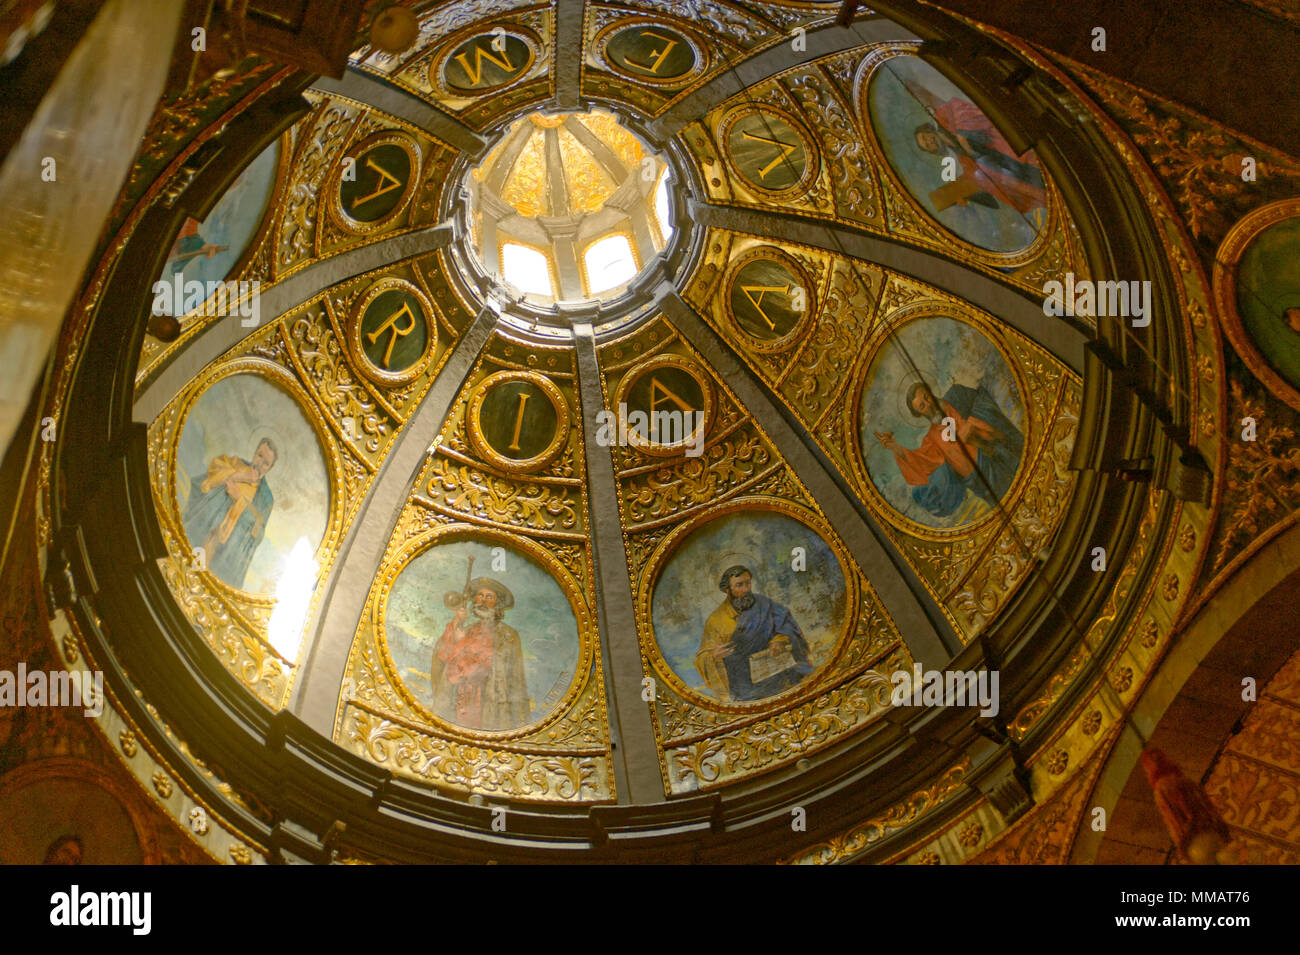 Ceiling of the Ave Maria Church Majorca - Stock Image